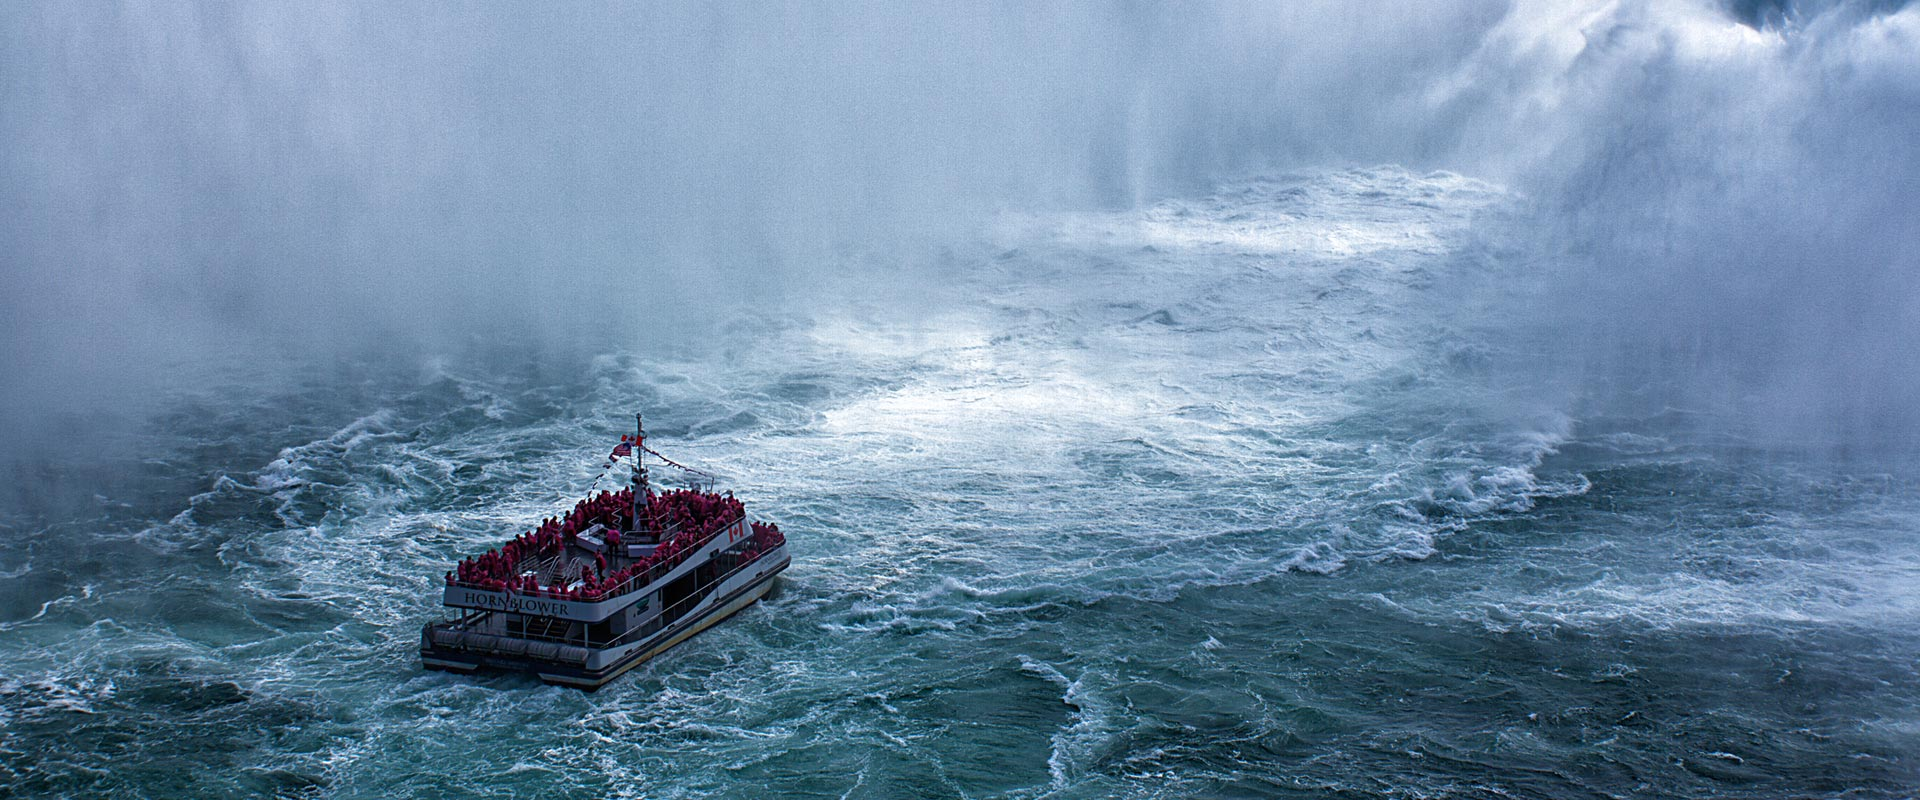 Hornblower Boat Ride – When Should You Go?